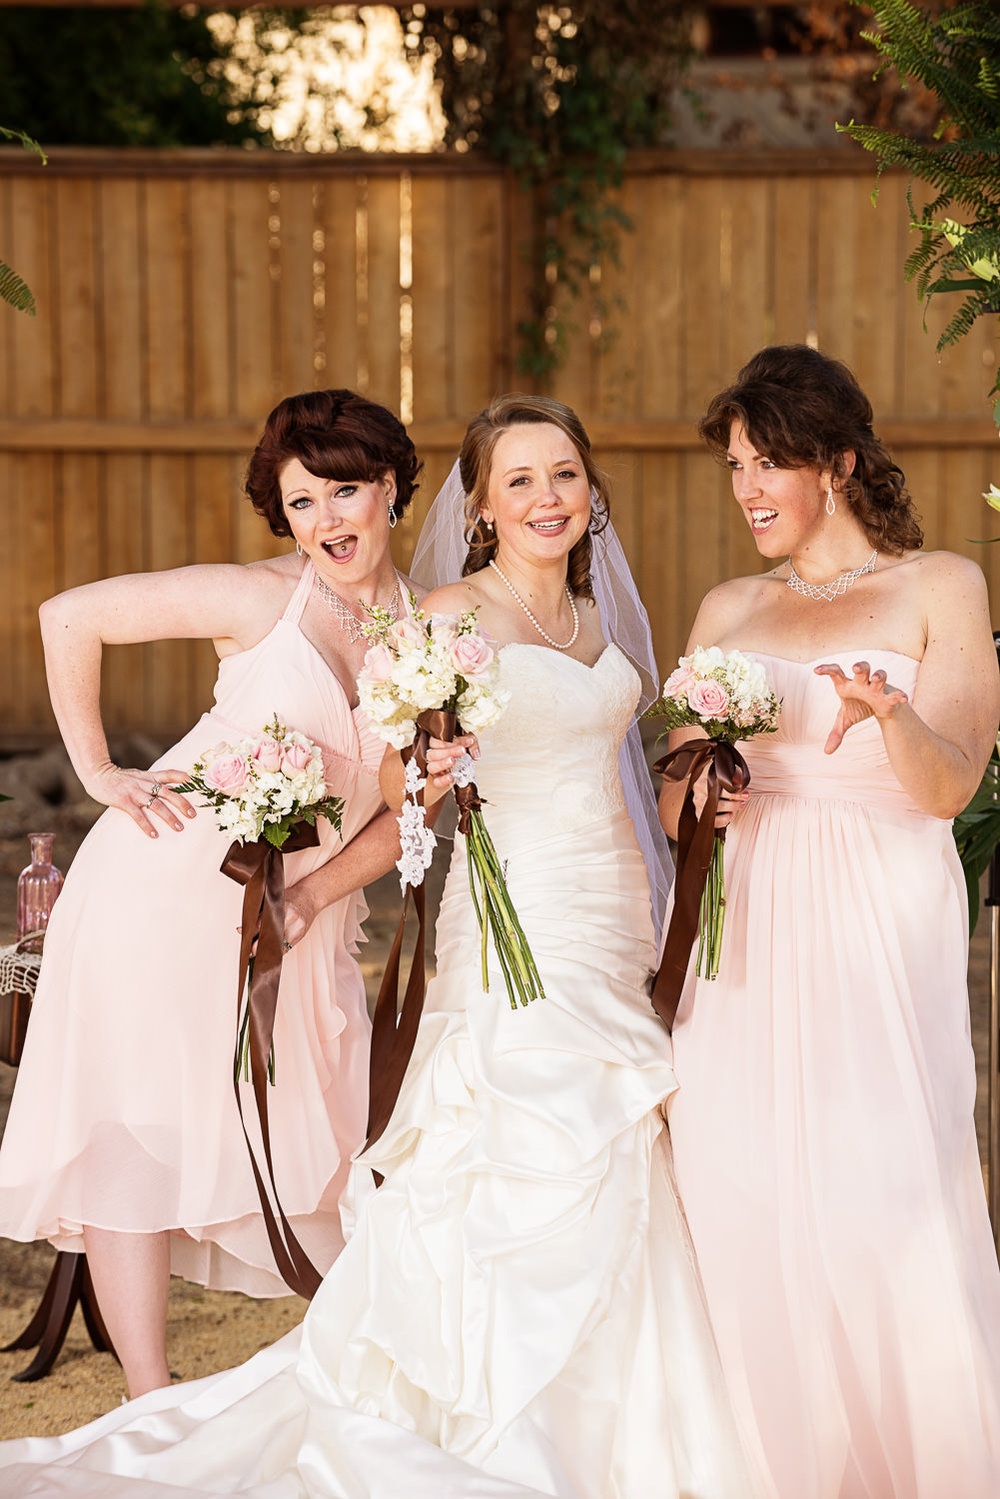 f27-Photography-Ojai-Wedding-February-2014-Bride-With-Her-bridesmaids